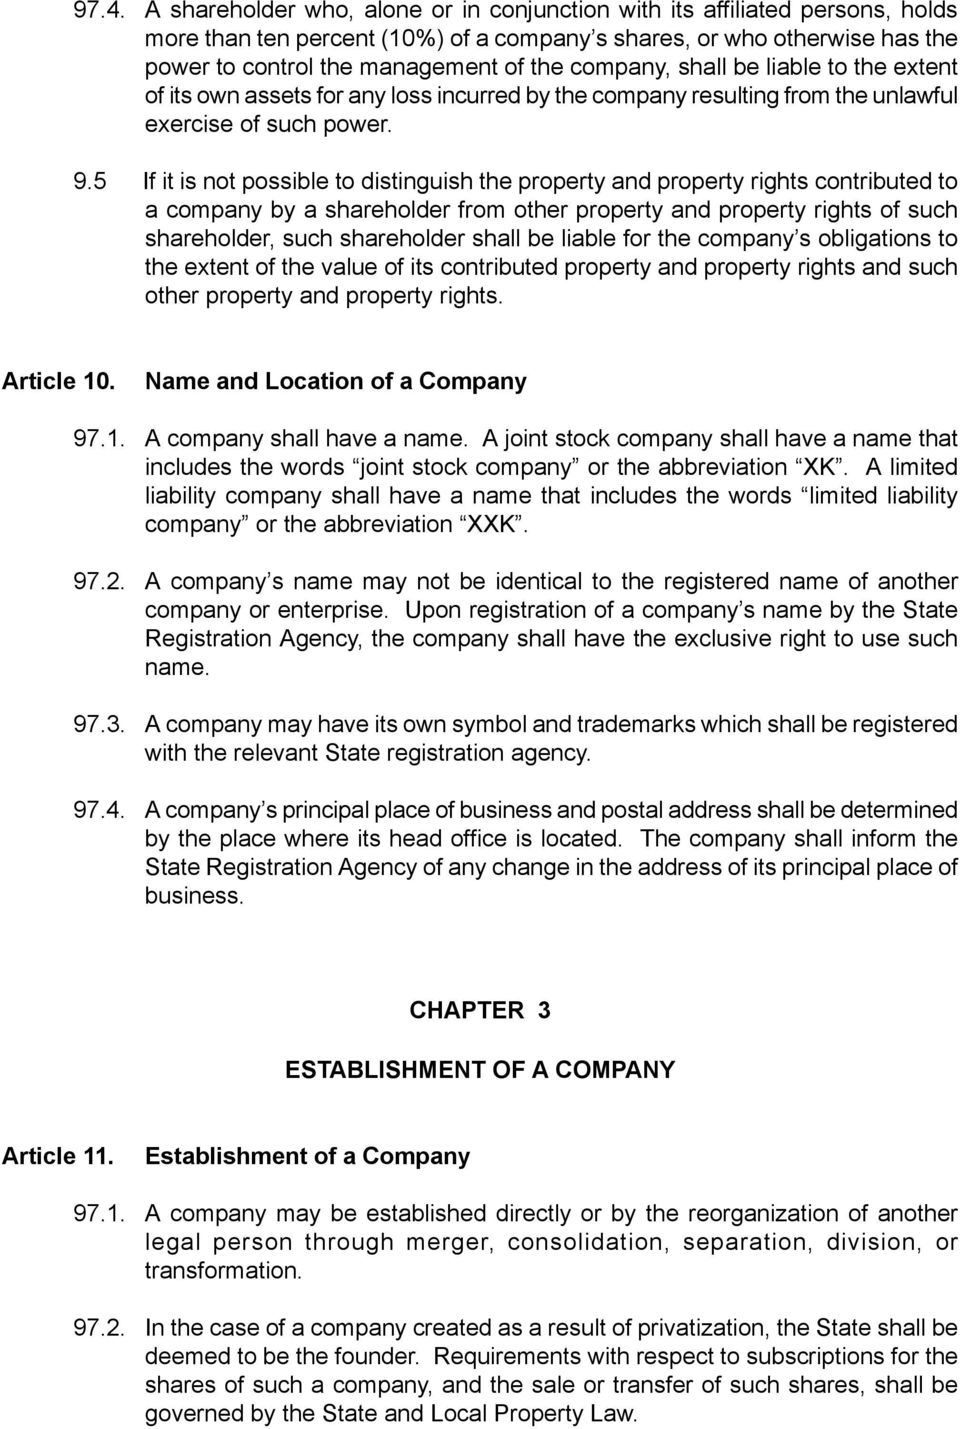 5 If it is not possible to distinguish the property and property rights contributed to a company by a shareholder from other property and property rights of such shareholder, such shareholder shall